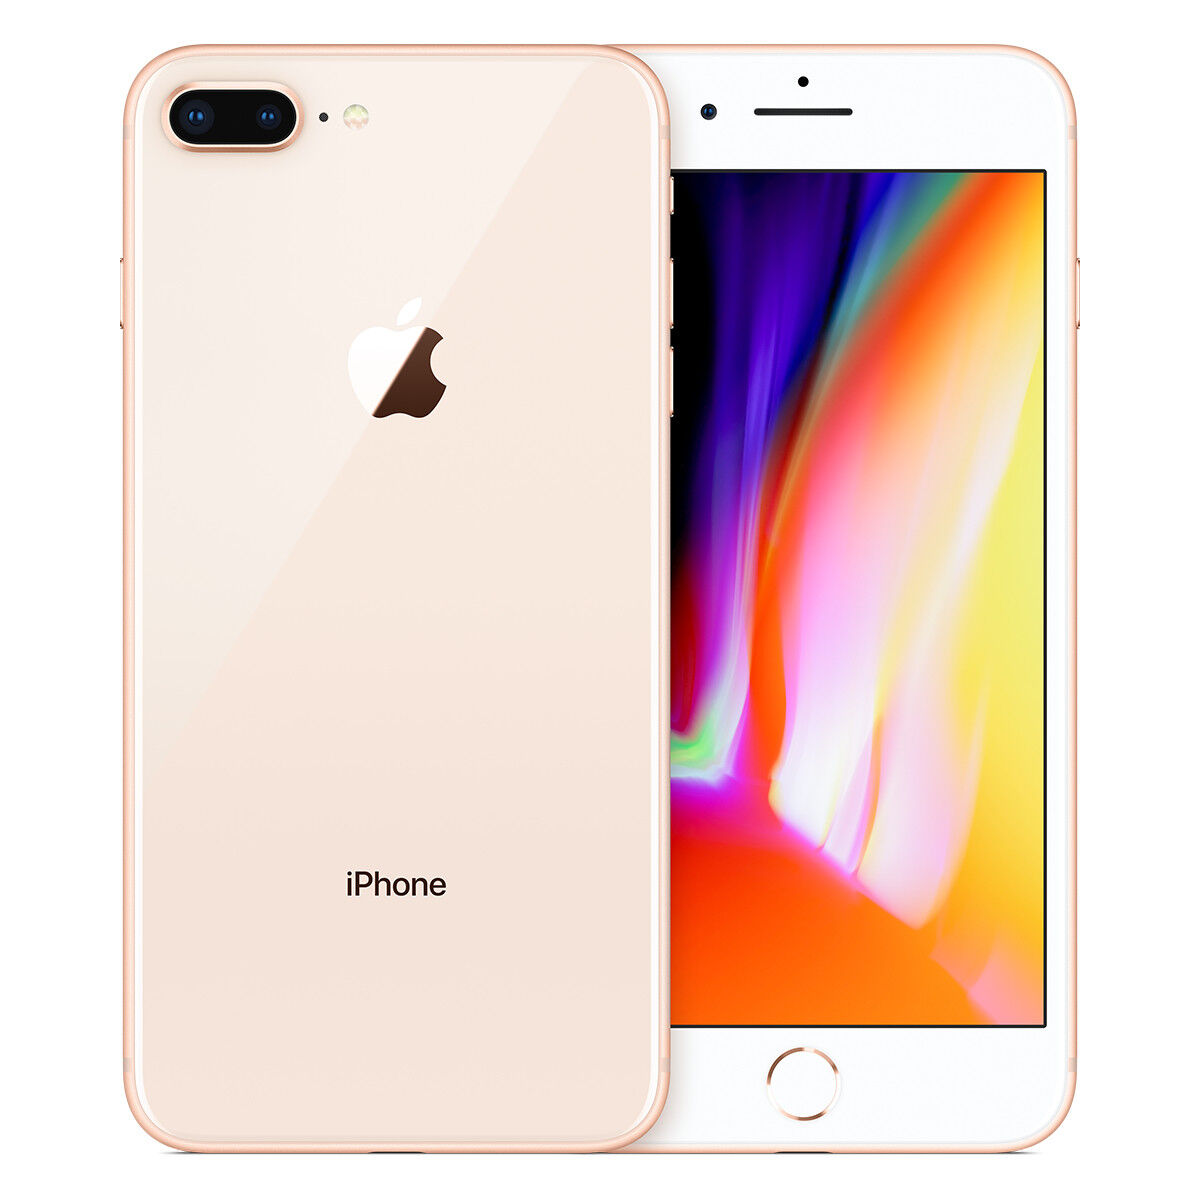 ca39324ca Apple iPhone 8 Plus - 64GB - Gold (Boost Mobile) A1864 (CDMA + GSM) for  sale online